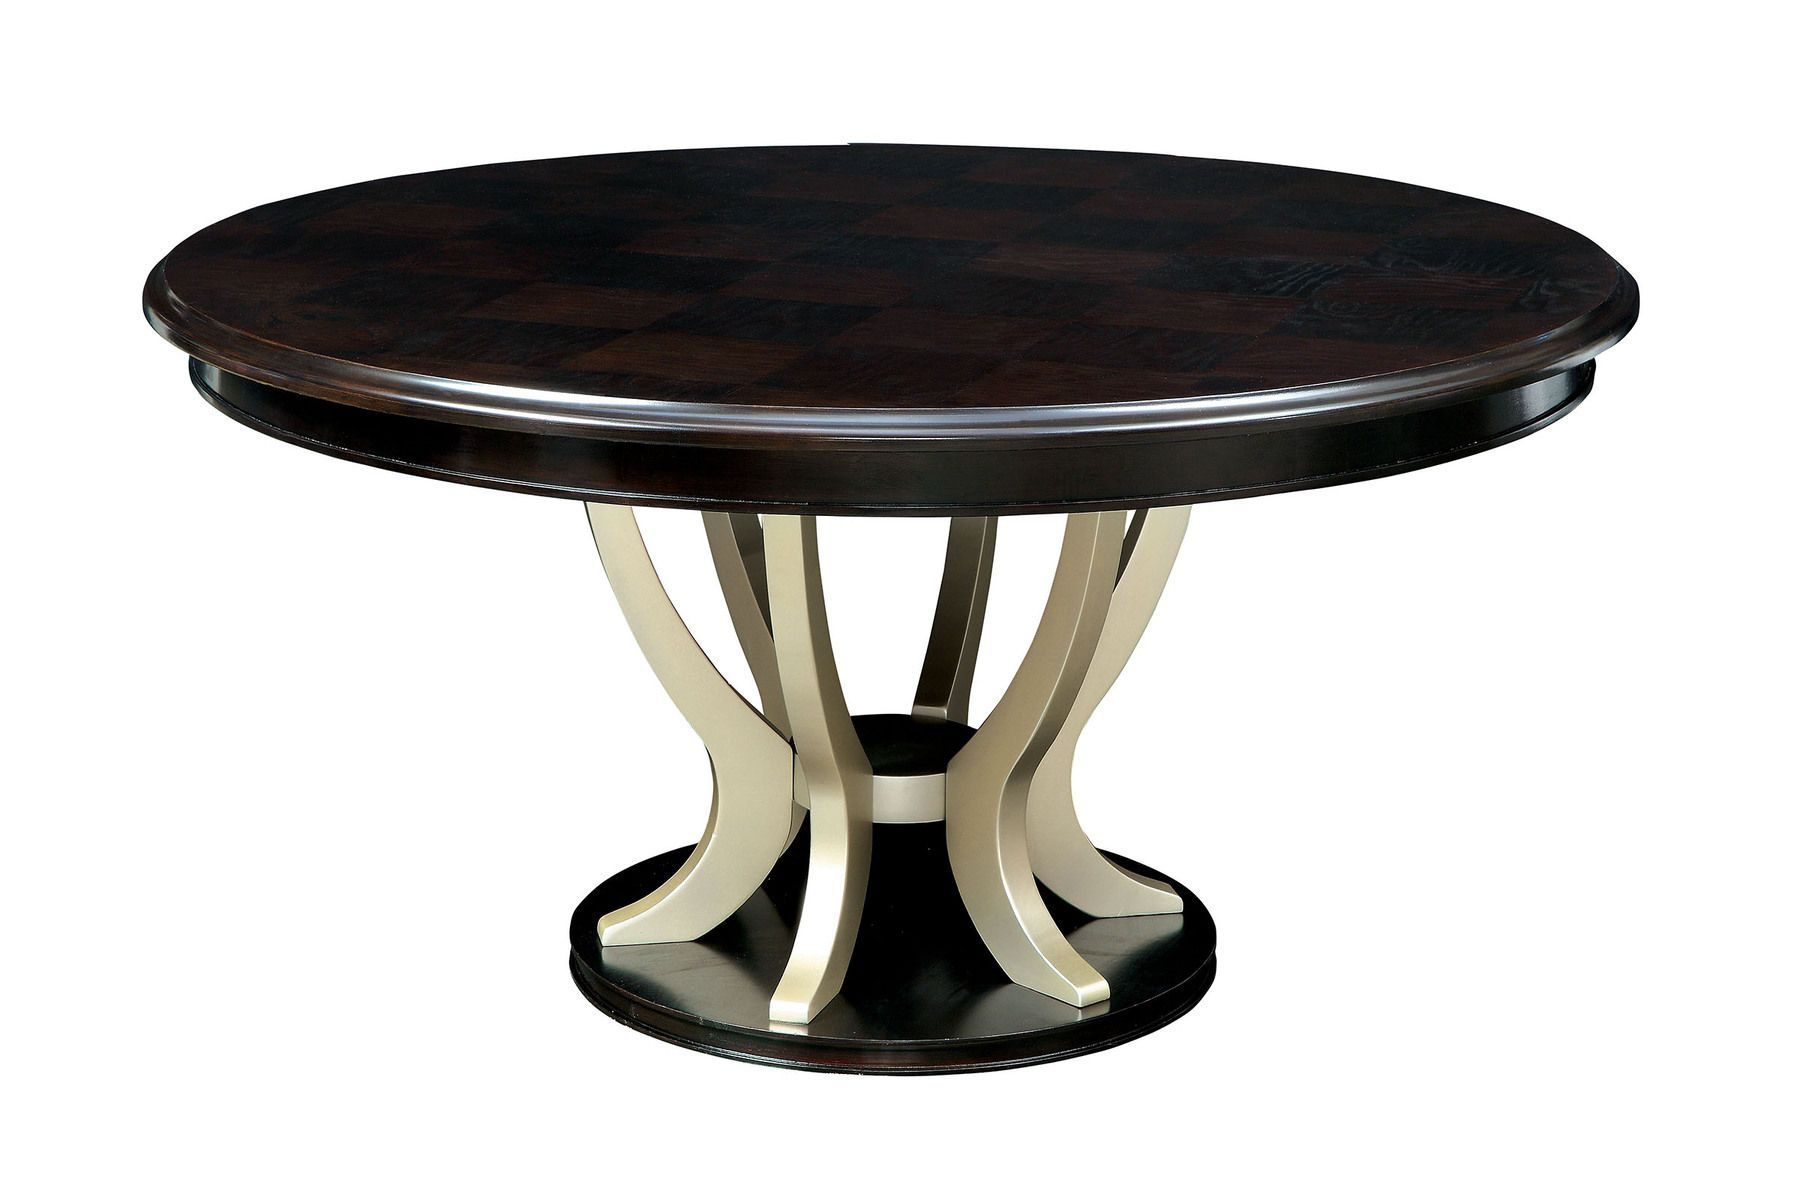 Ornette Rd Table In 2020 Round Dining Table Sets Round Dining